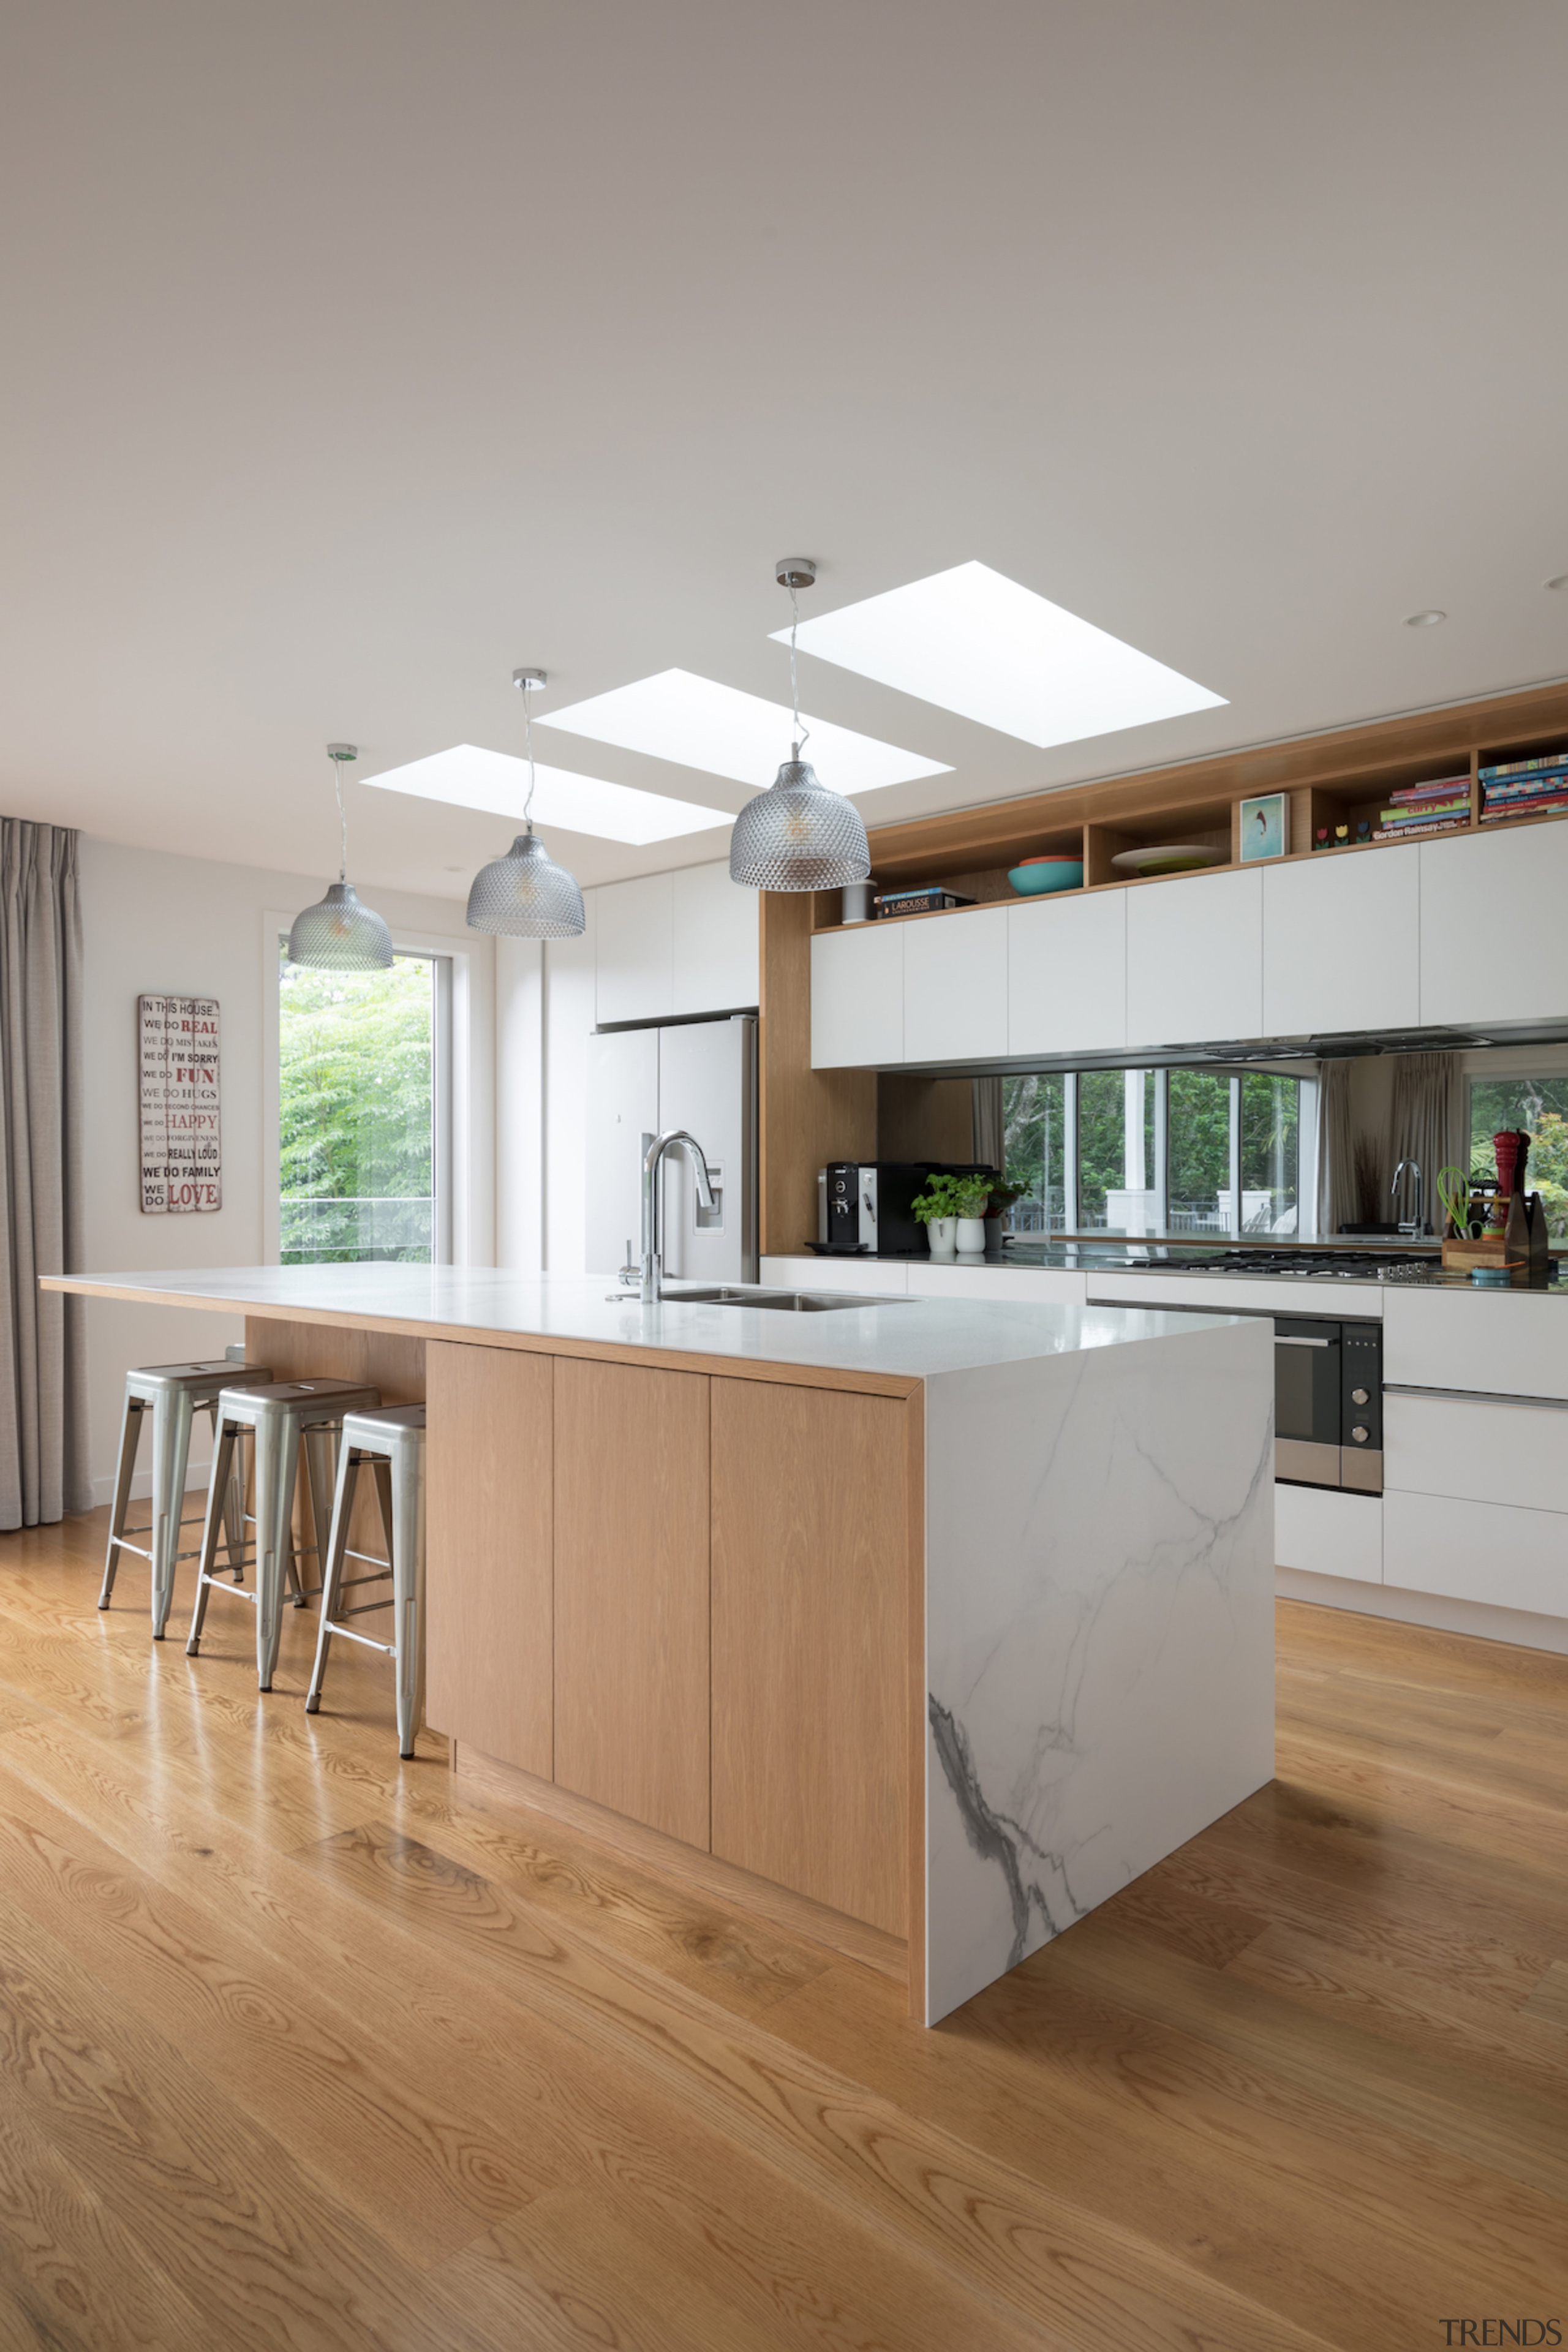 The brief was to renovate this family home architecture, cabinetry, ceiling, countertop, cuisine classique, daylighting, floor, flooring, hardwood, house, interior design, kitchen, laminate flooring, wood, wood flooring, gray, brown